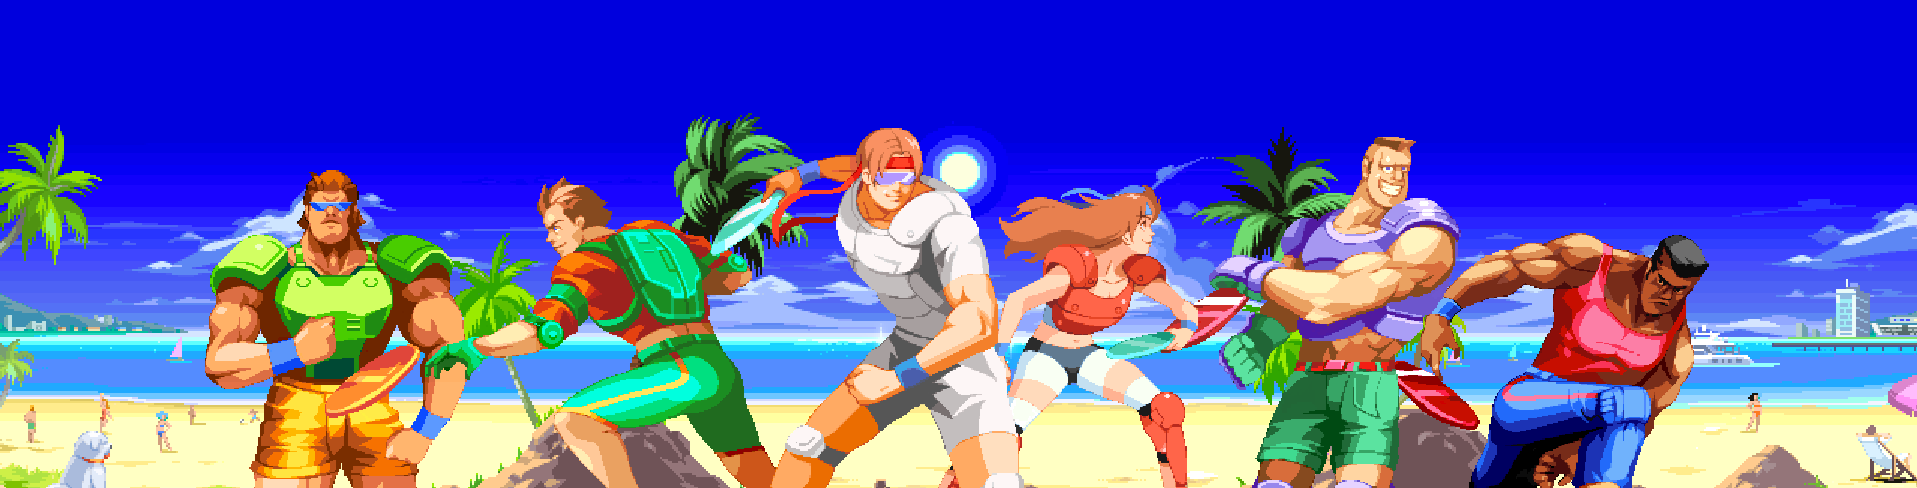 Windjammers Is Finally Out!